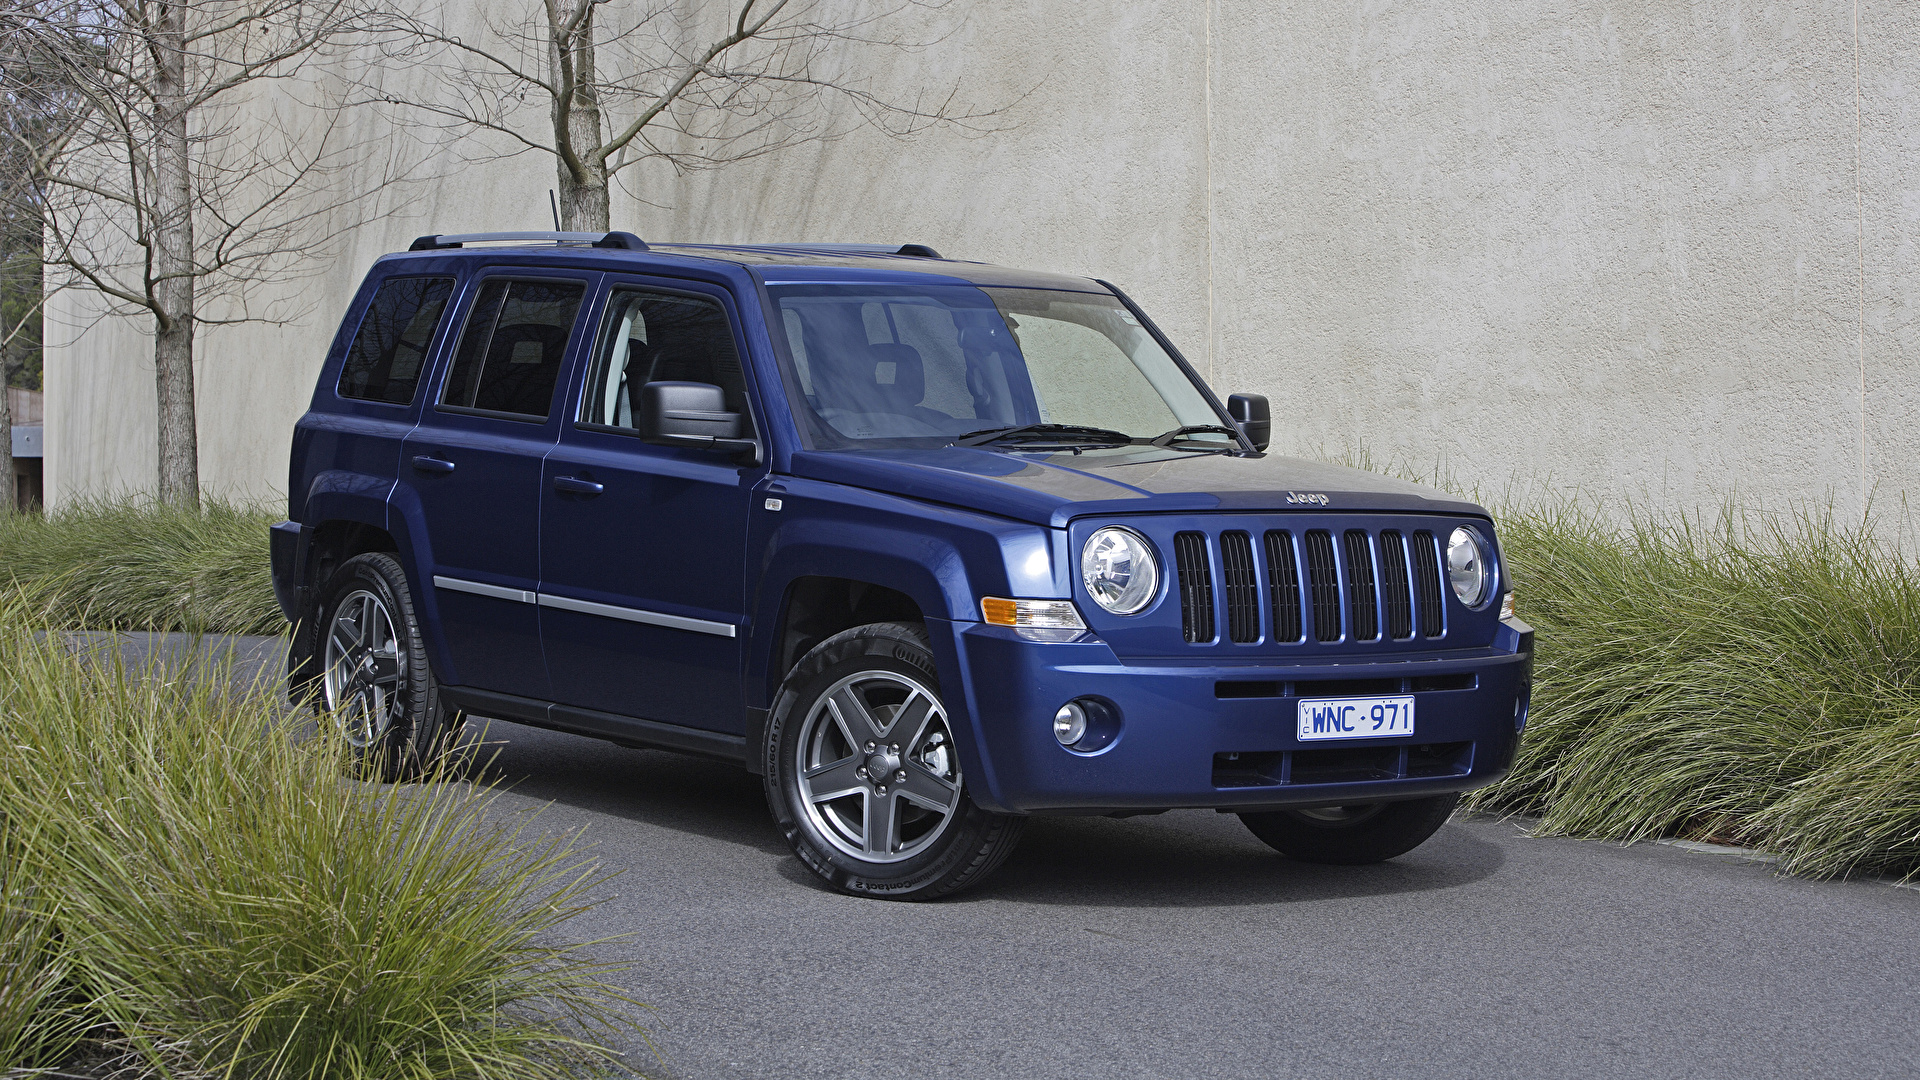 2017 jeep patriot recalls and problems - HD 3840×2400